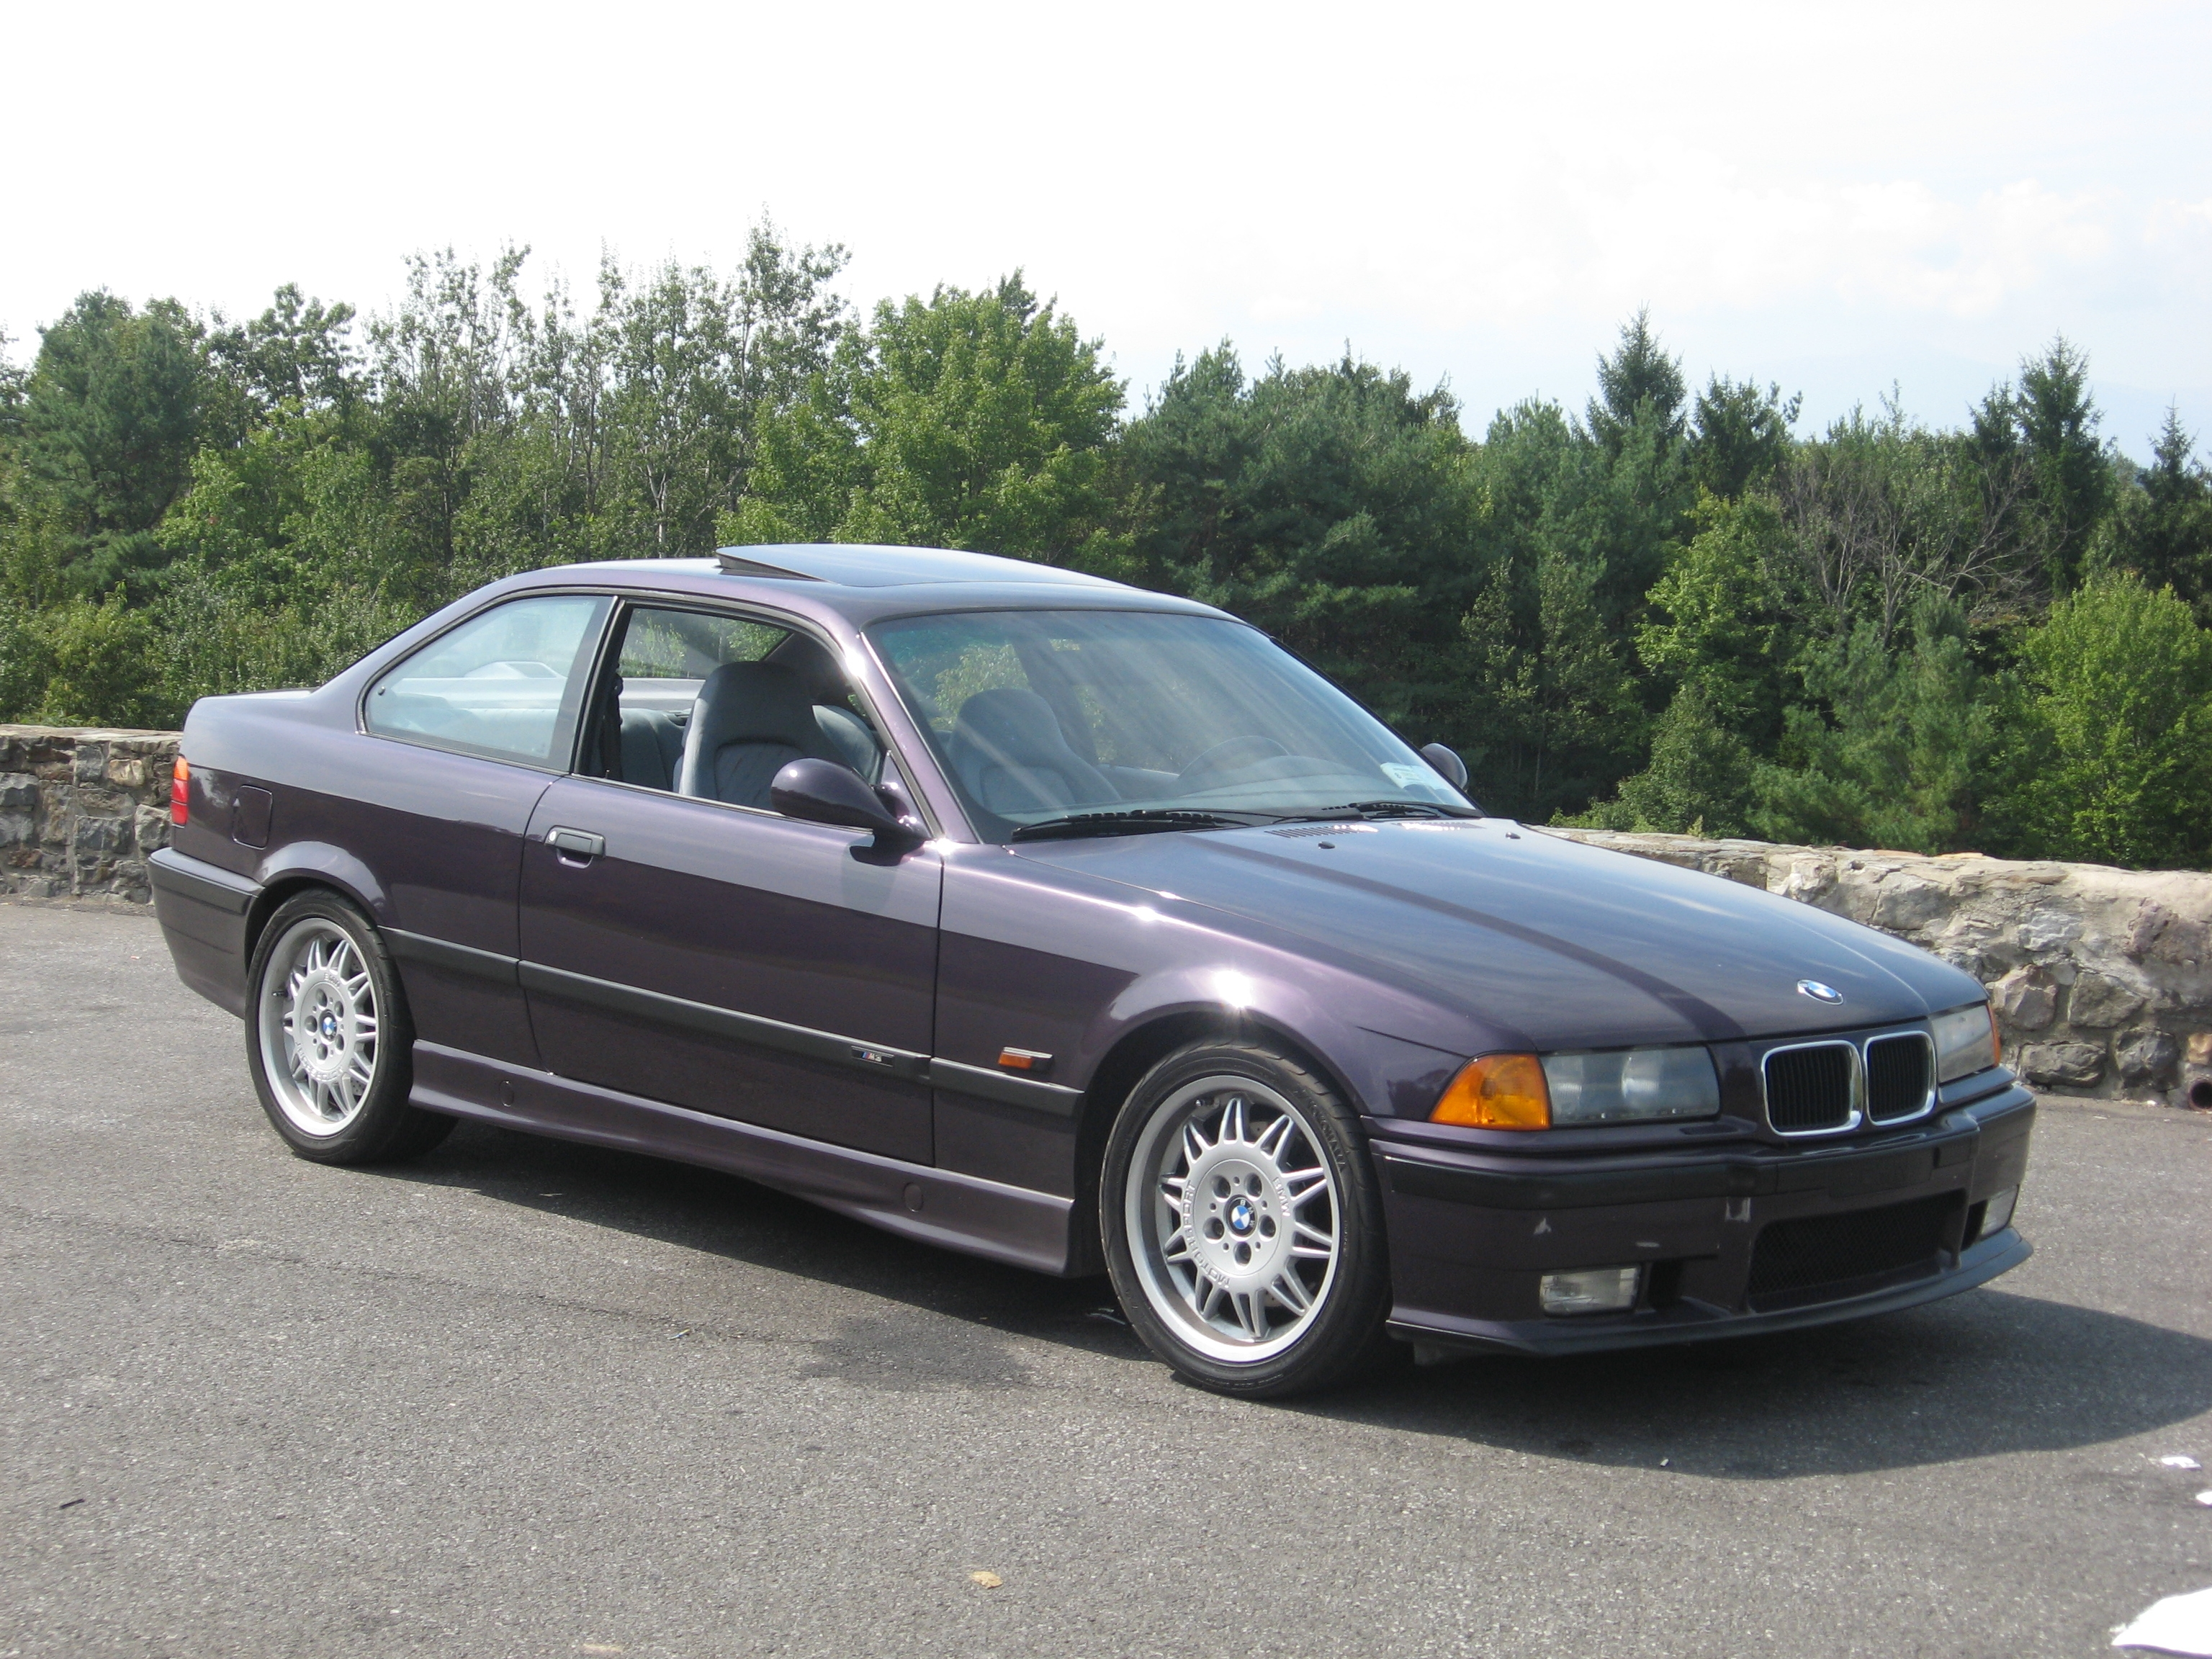 95DaytonaM3Girl's 1995 BMW M3